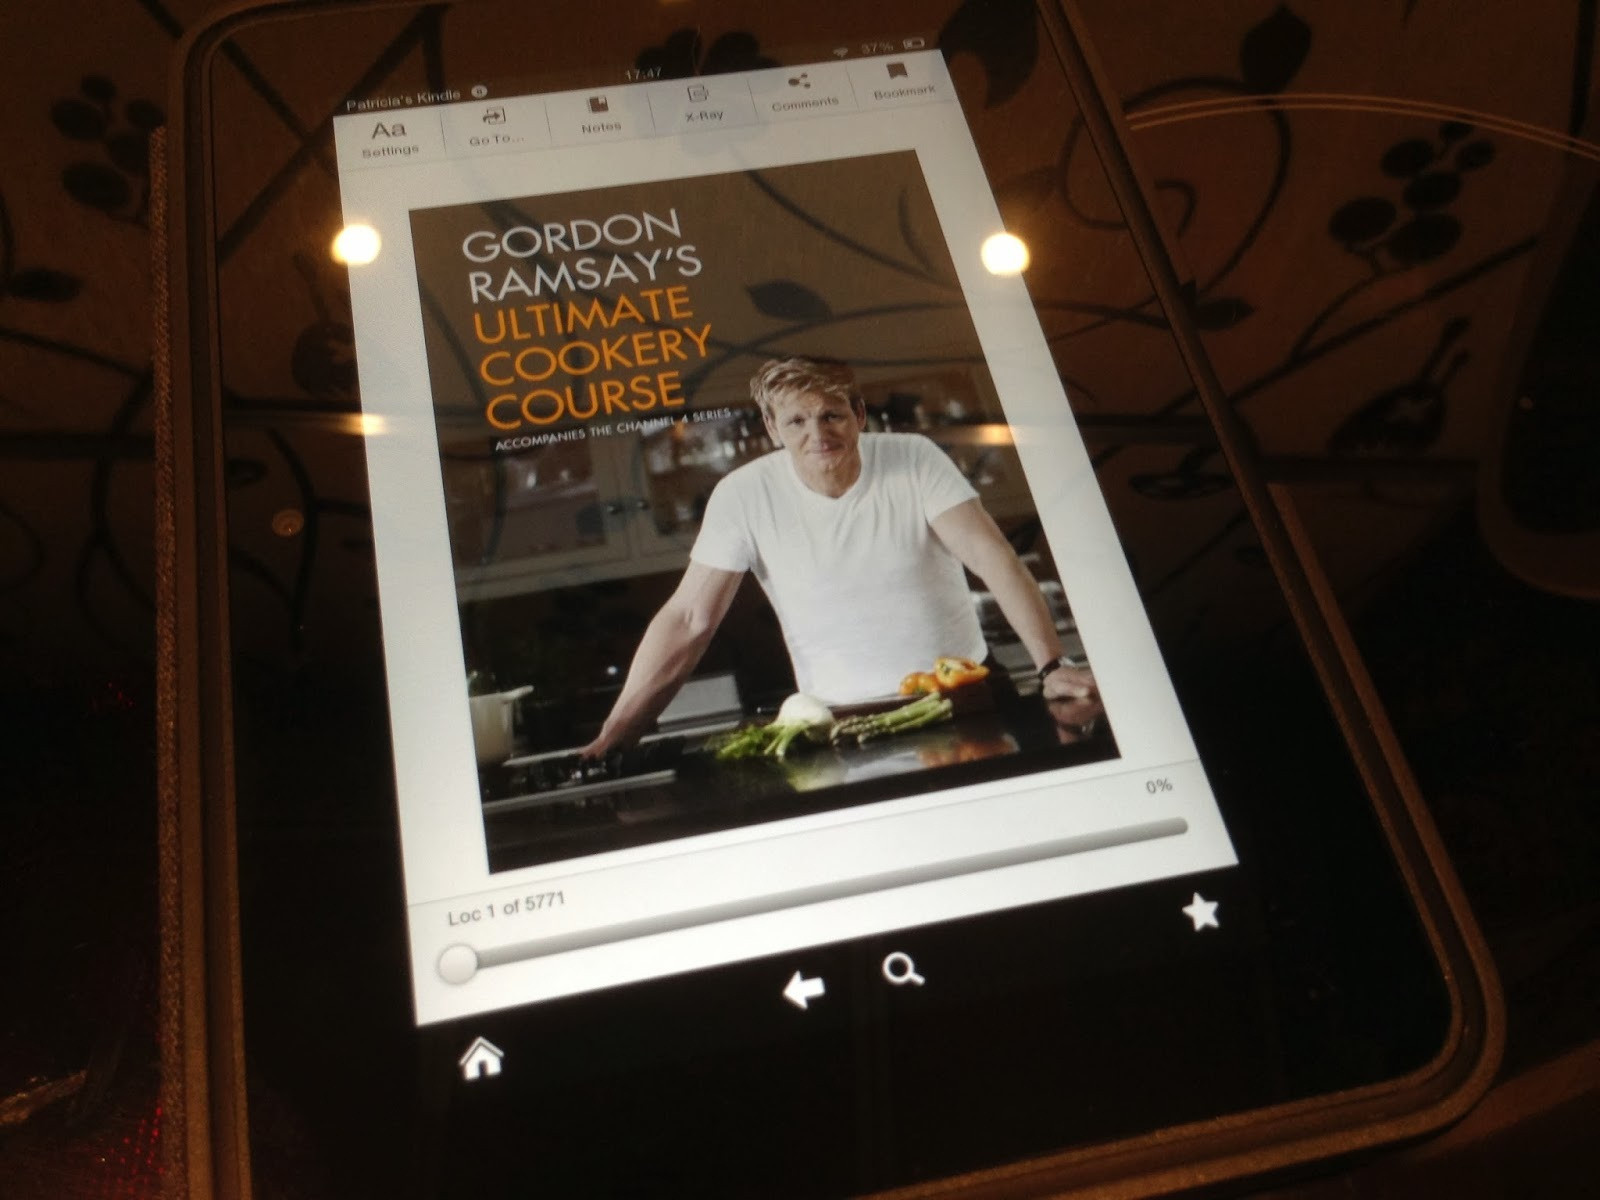 Livros #04: Gordon Ramsay's Ultimate Cookery Course